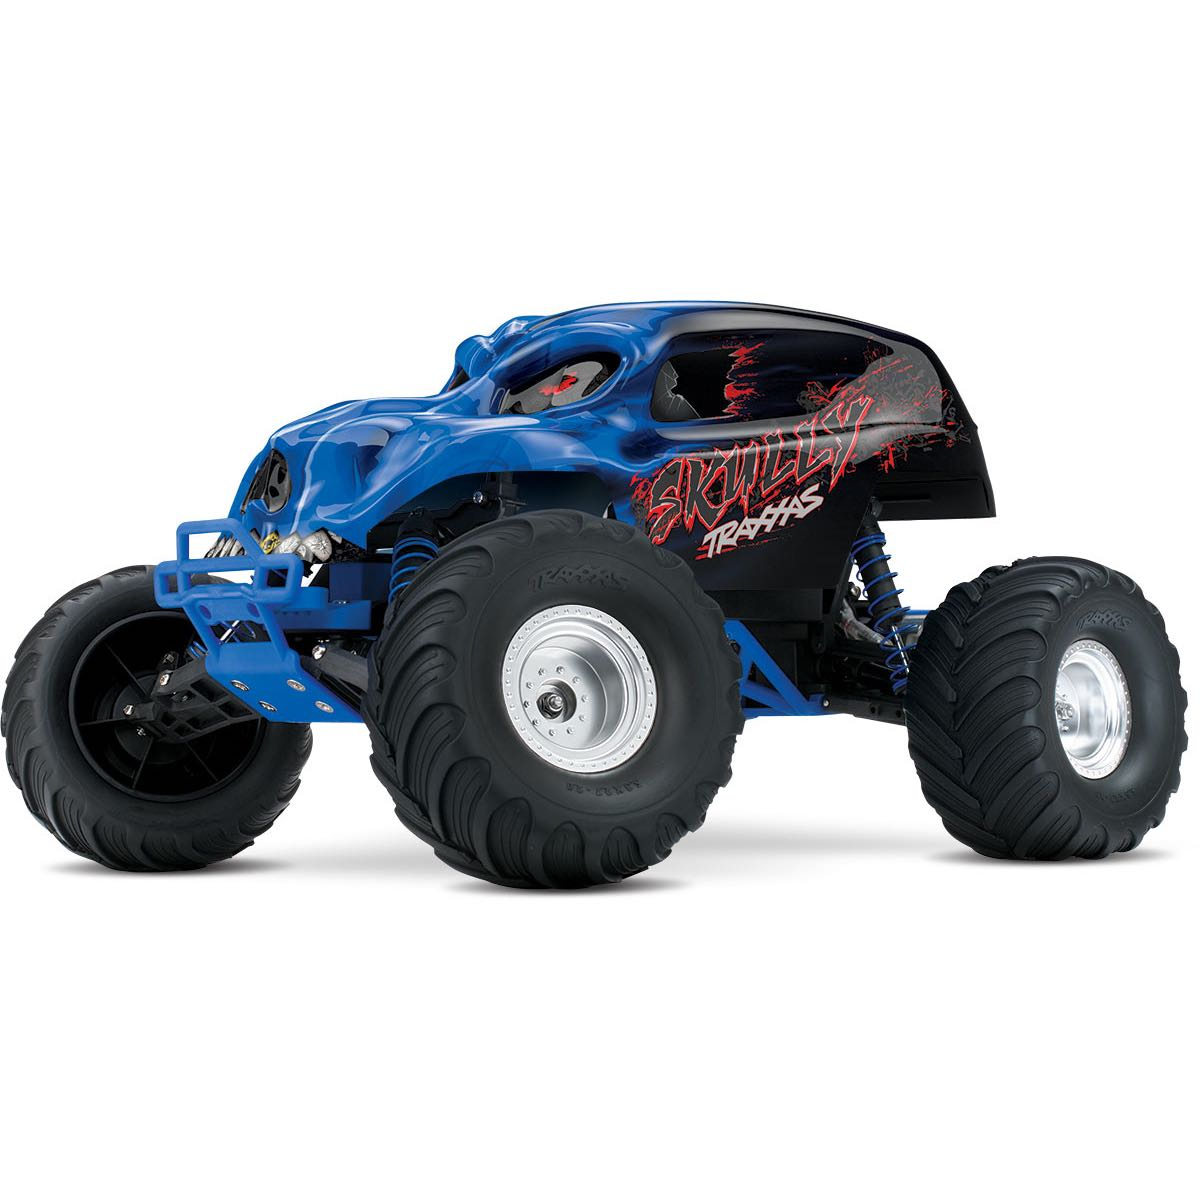 Traxxas Skully Monster Truck 1/10 RTR